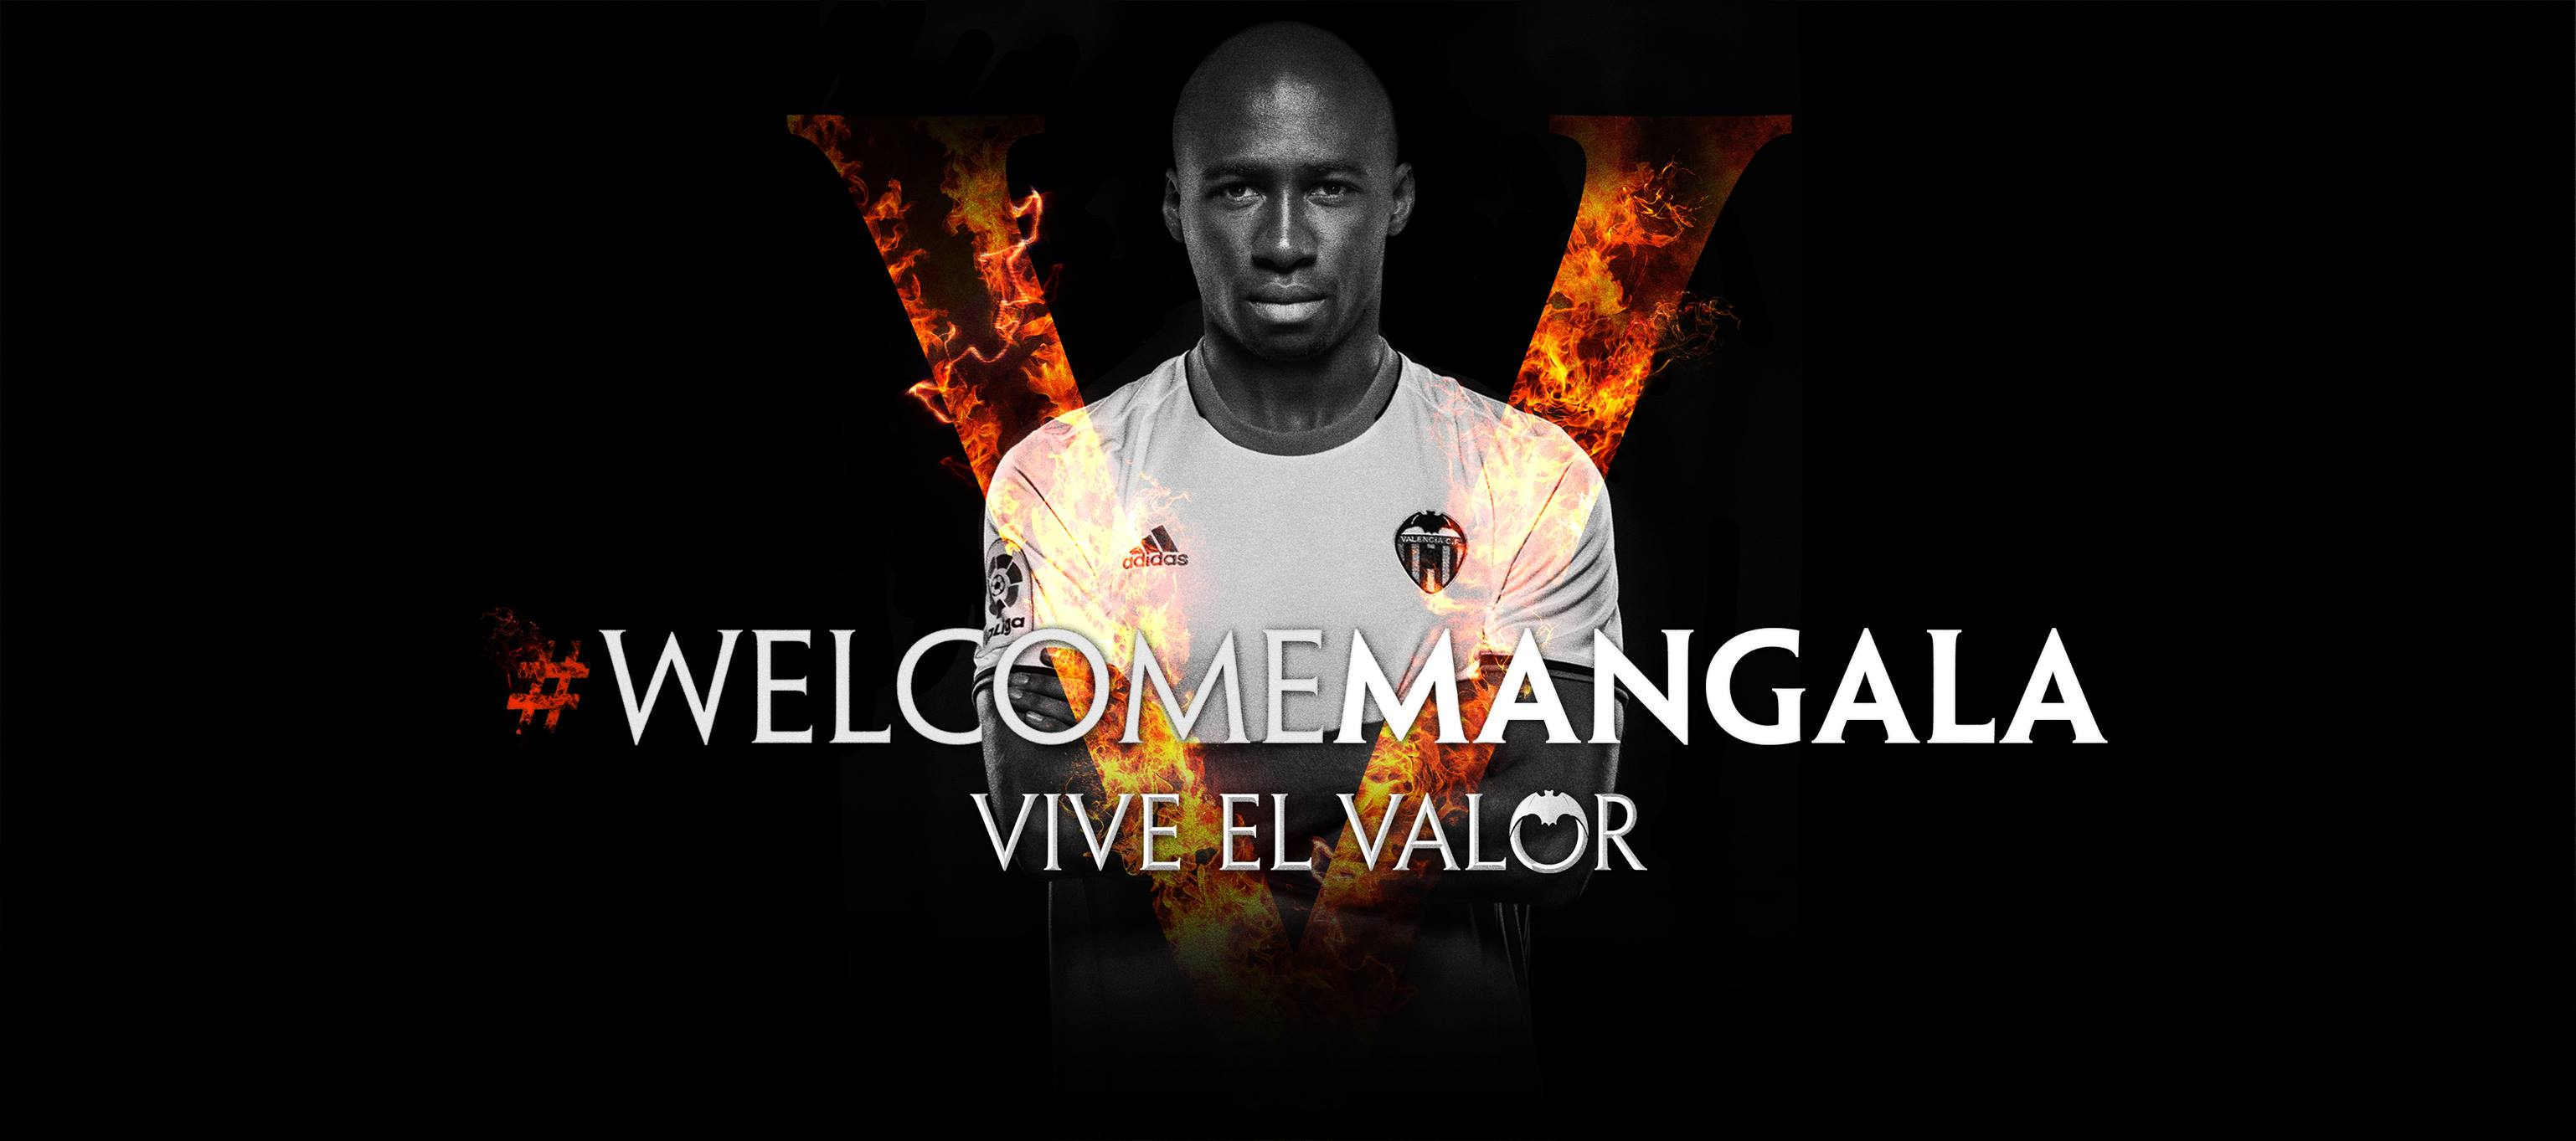 valencia-welcome